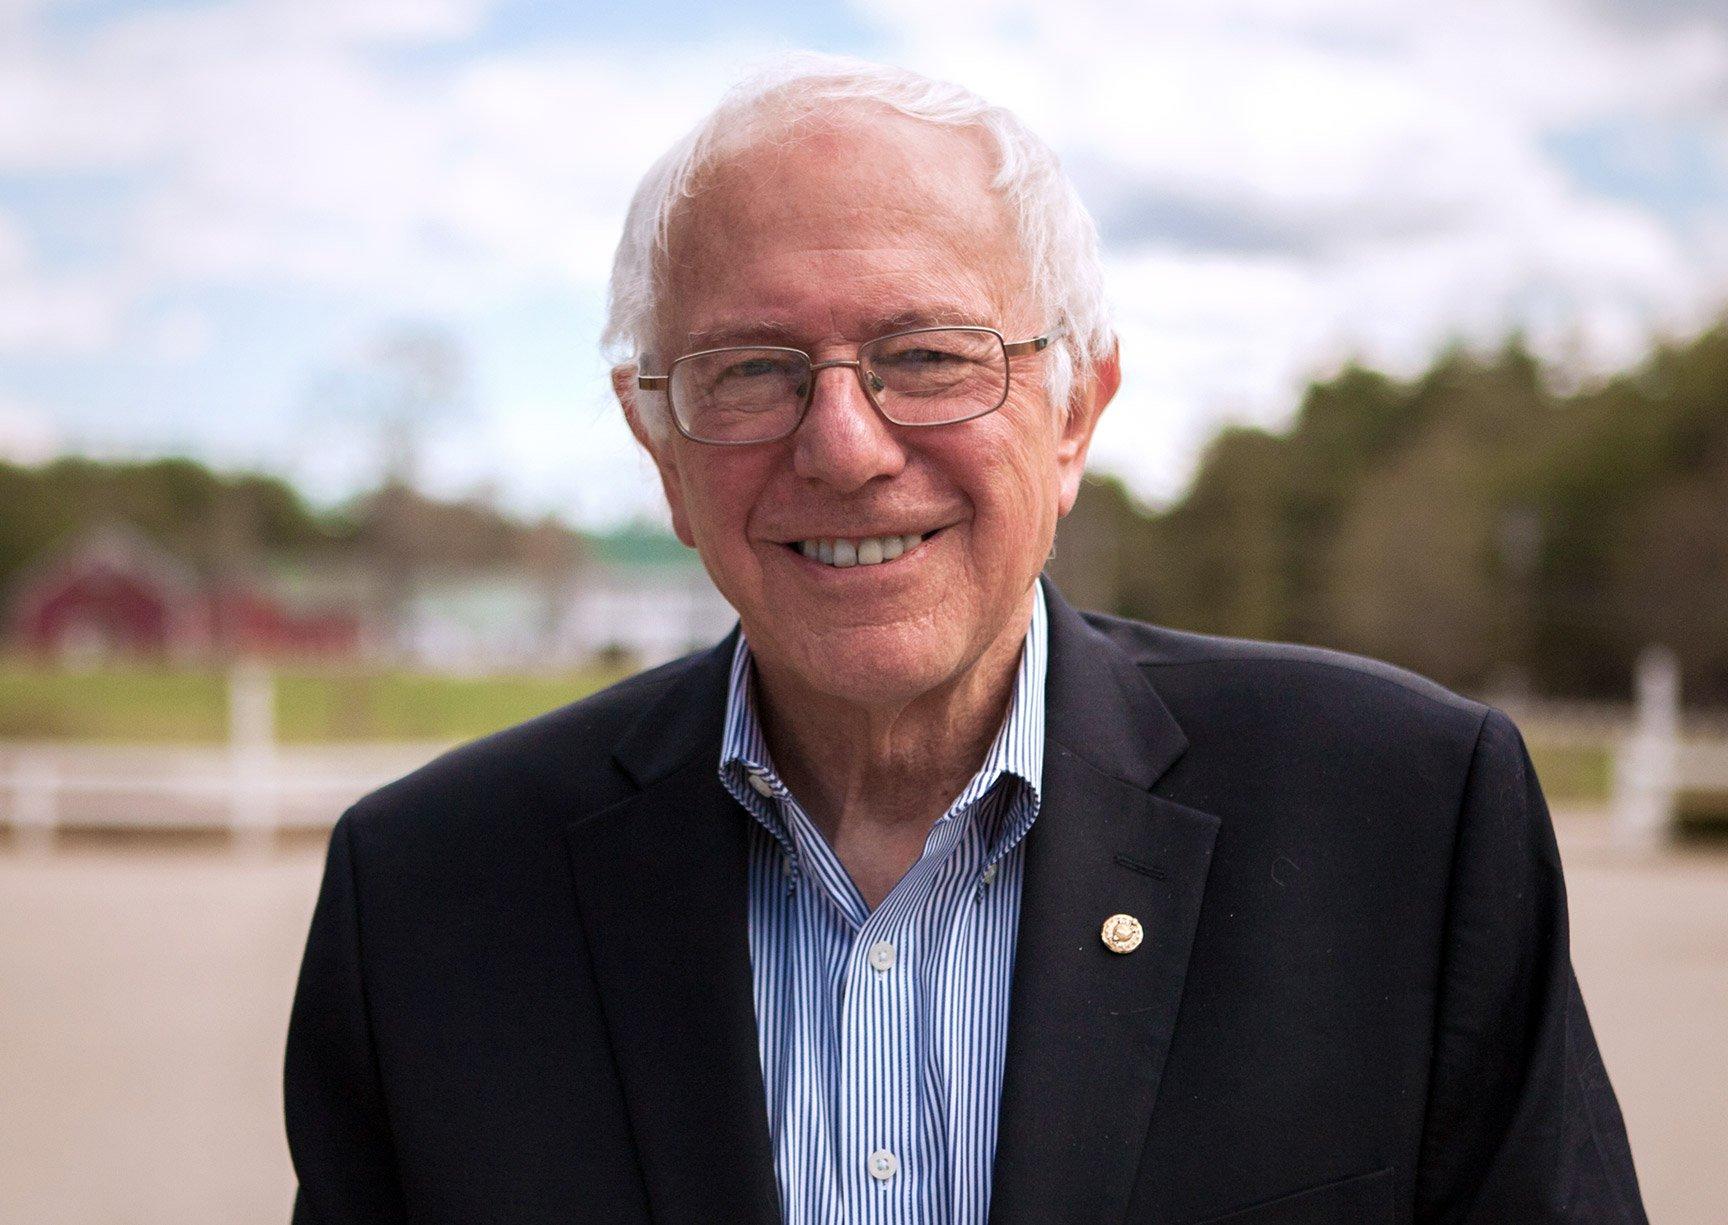 Featured_bernie-sanders-portrait-01_21070